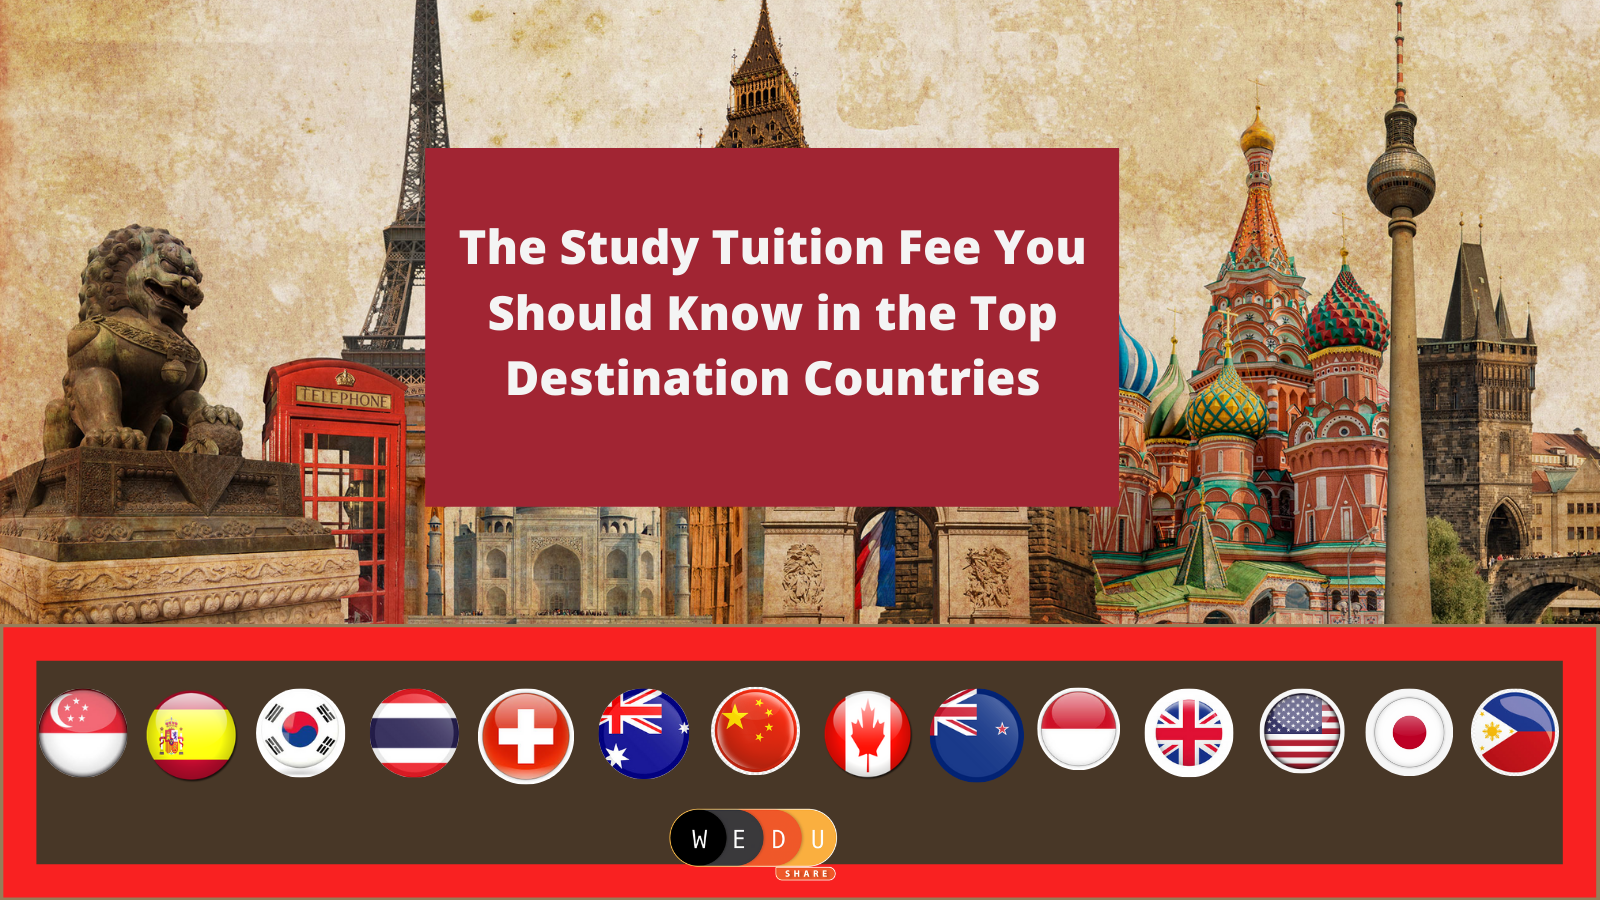 The Study Tuition Fee You Should Know in the Top Destination Countries